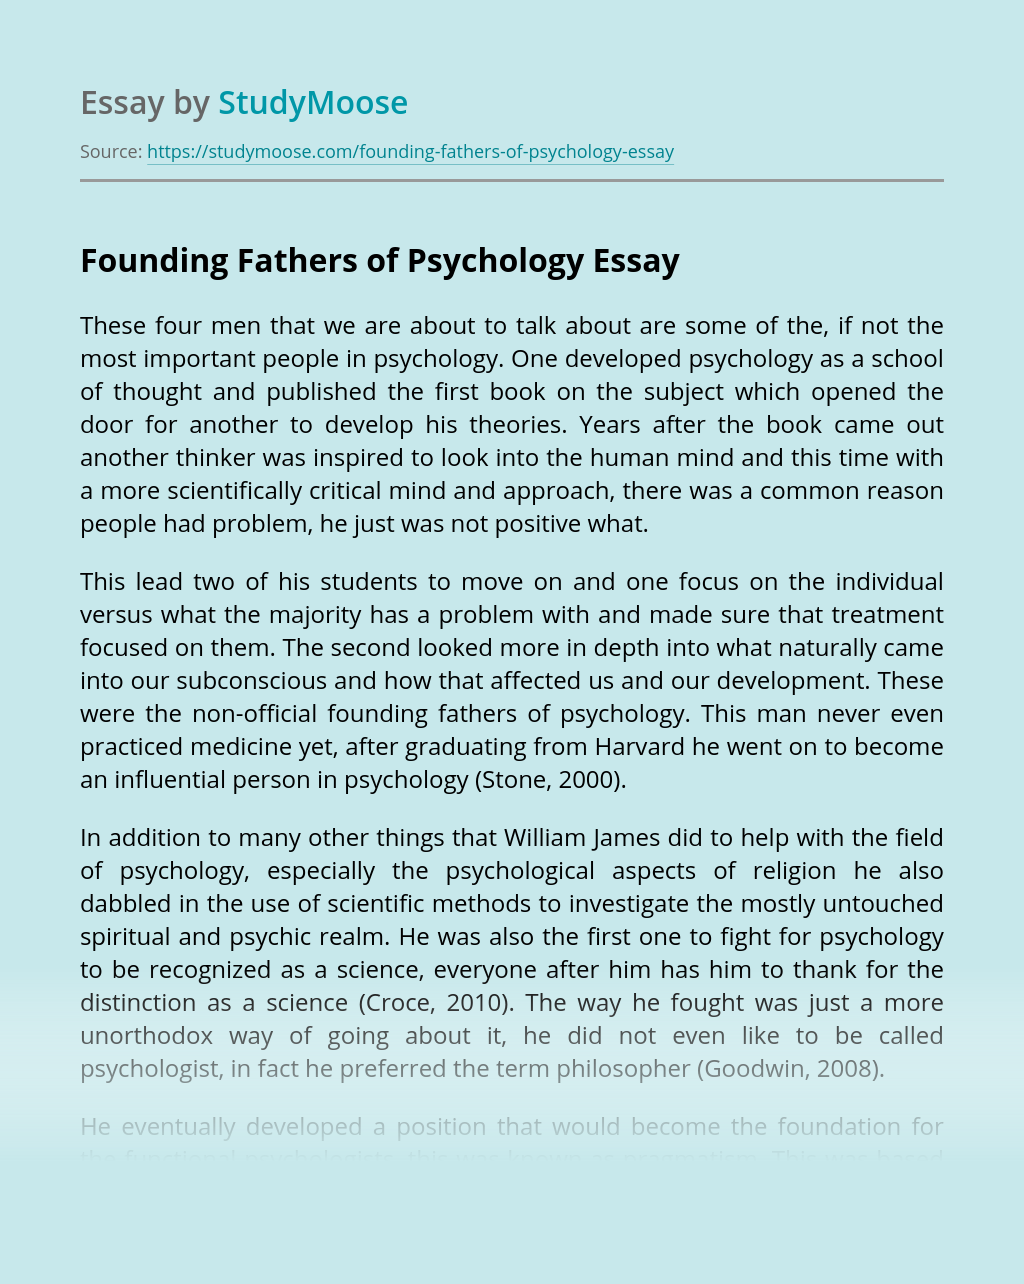 Founding Fathers of Psychology